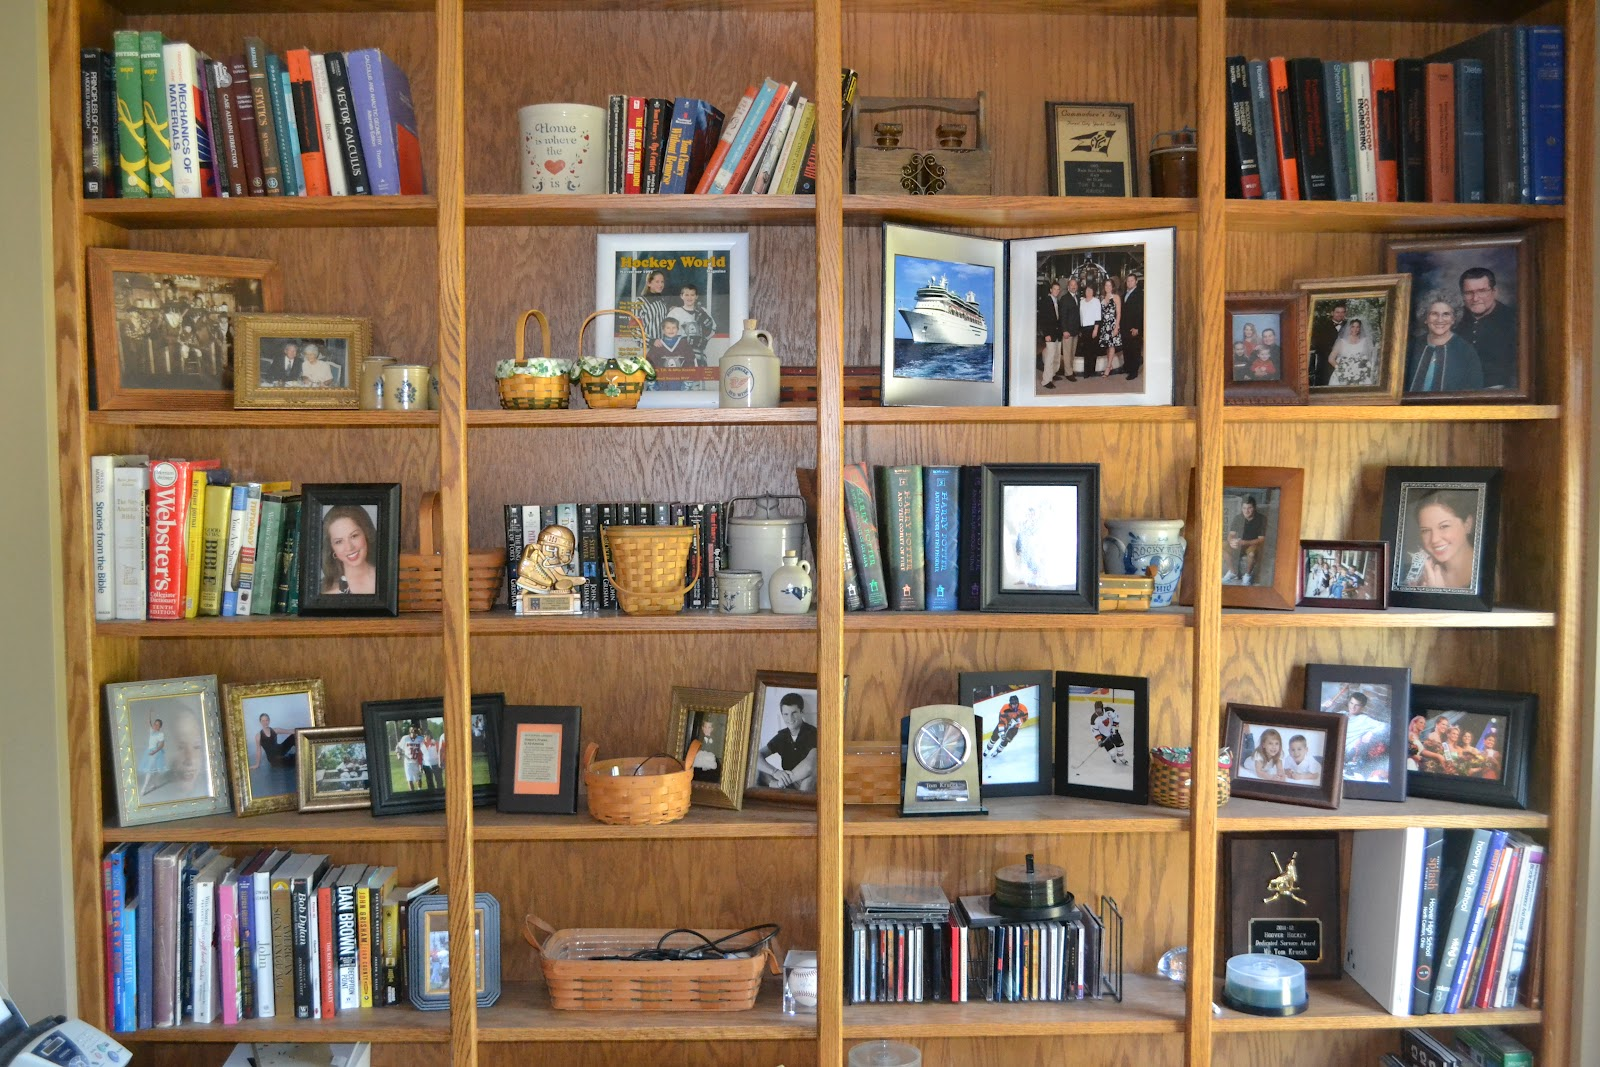 I Call These Bookshelves Loosely Because There Are In Fact Very Few Books  And Alot Of Junk On These Shelves. When Looking For A Place To Put The  Things I ...